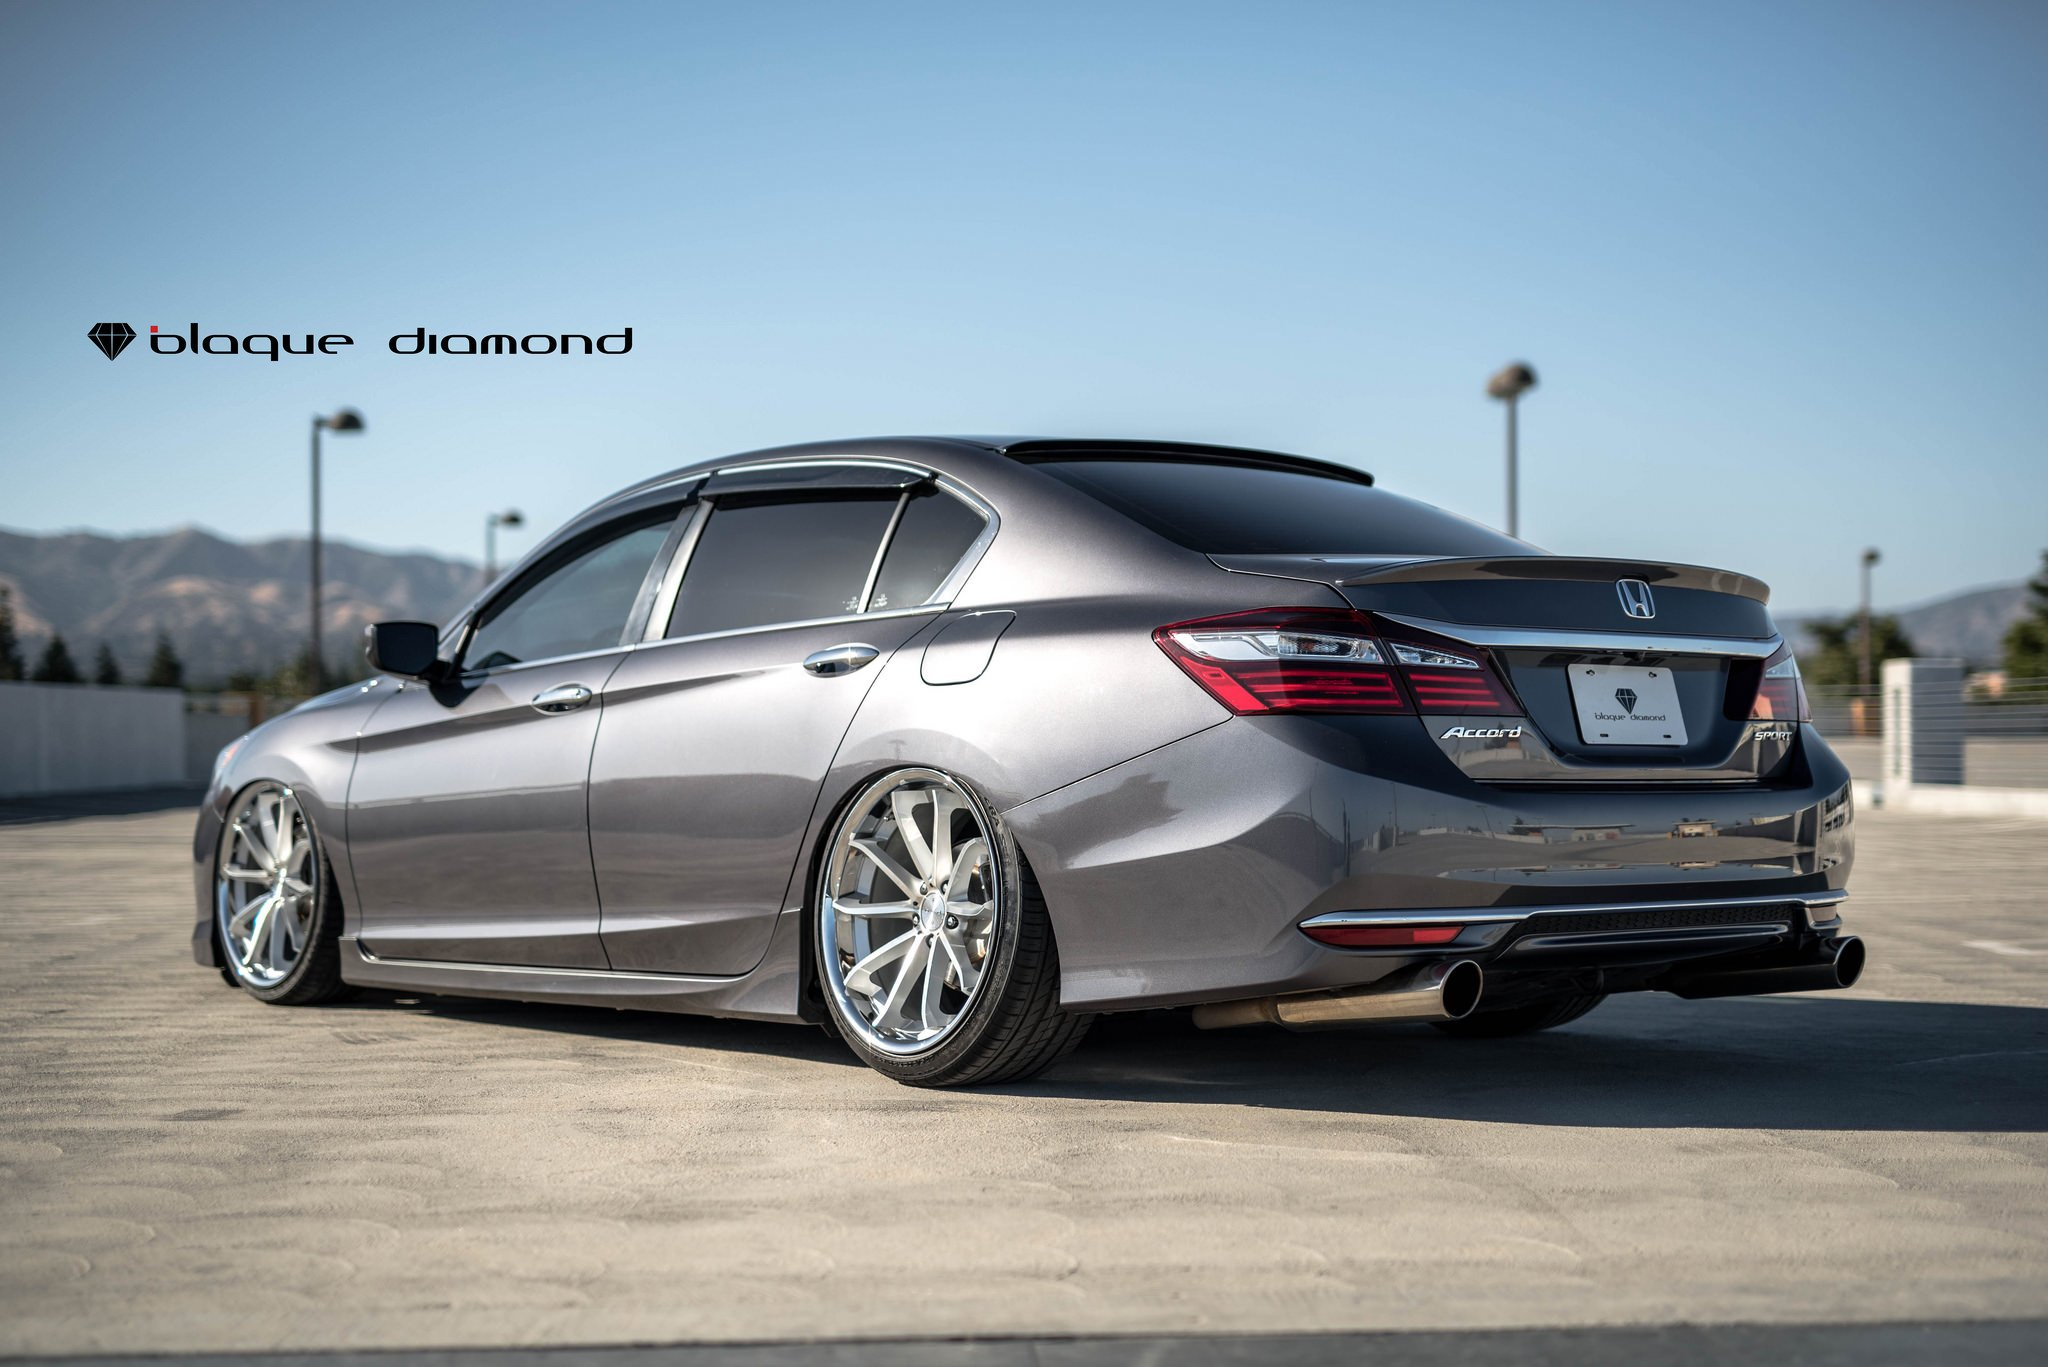 Stanced Honda Accord With Air Suspension And Black Diamond Bd23 Rims Custom Sedan Photo By